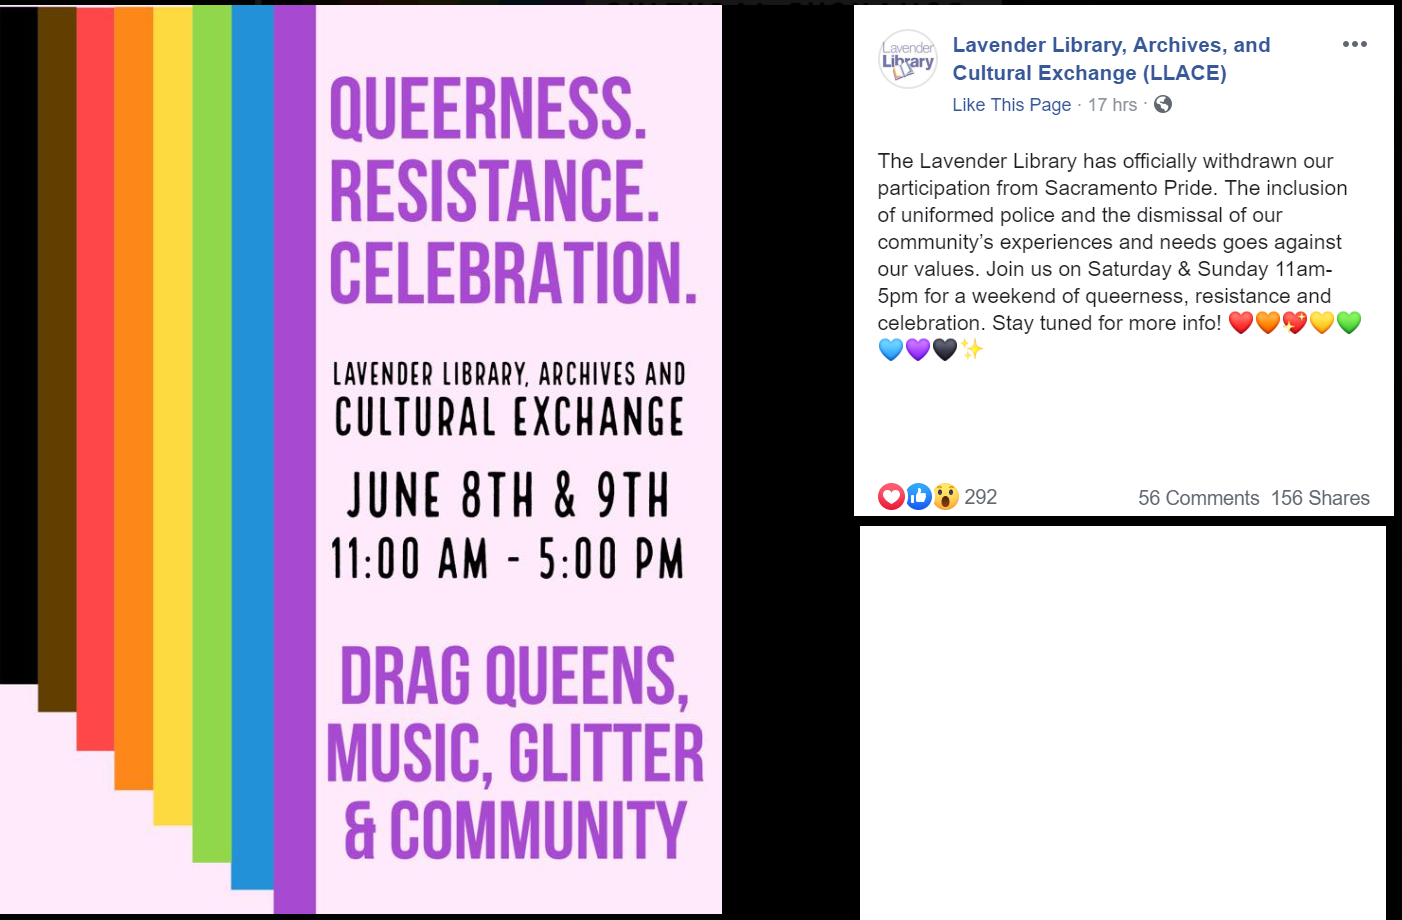 a pride related event hosted by the lavender library